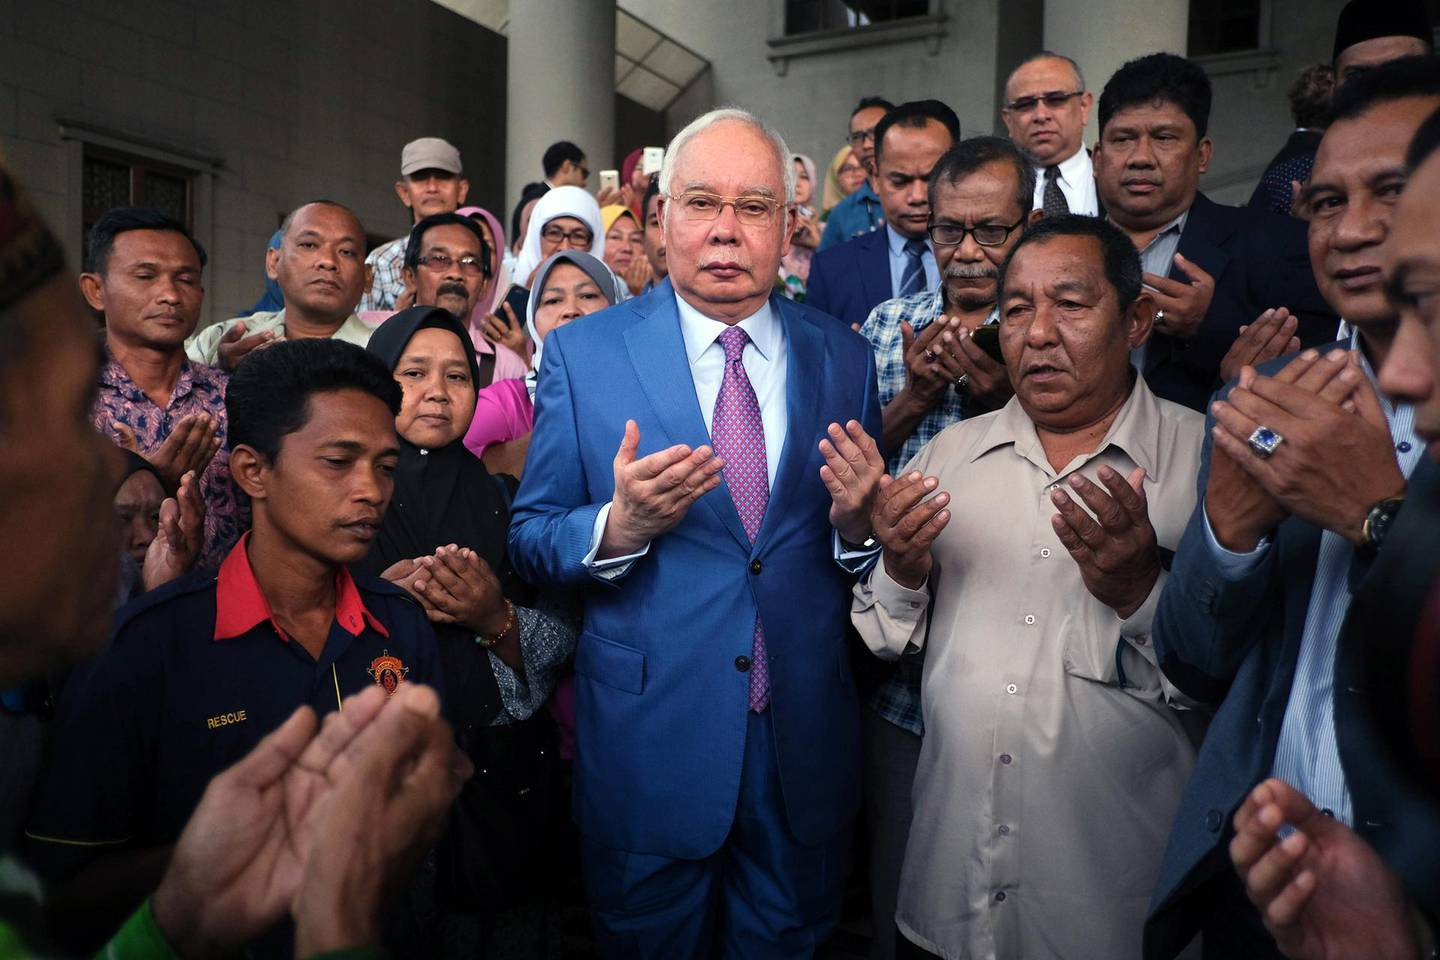 Najib Razak, Malaysia's former prime minister, center, offers prayers with his supporters as he arrives at the Kuala Lumpur Courts Complex in Kuala Lumpur, Malaysia, on Tuesday, Dec. 3, 2019. Najib is set to give his testimony to defend himself against charges of corruption involving a former 1MDB unit. Photographer: Samsul Said/Bloomberg